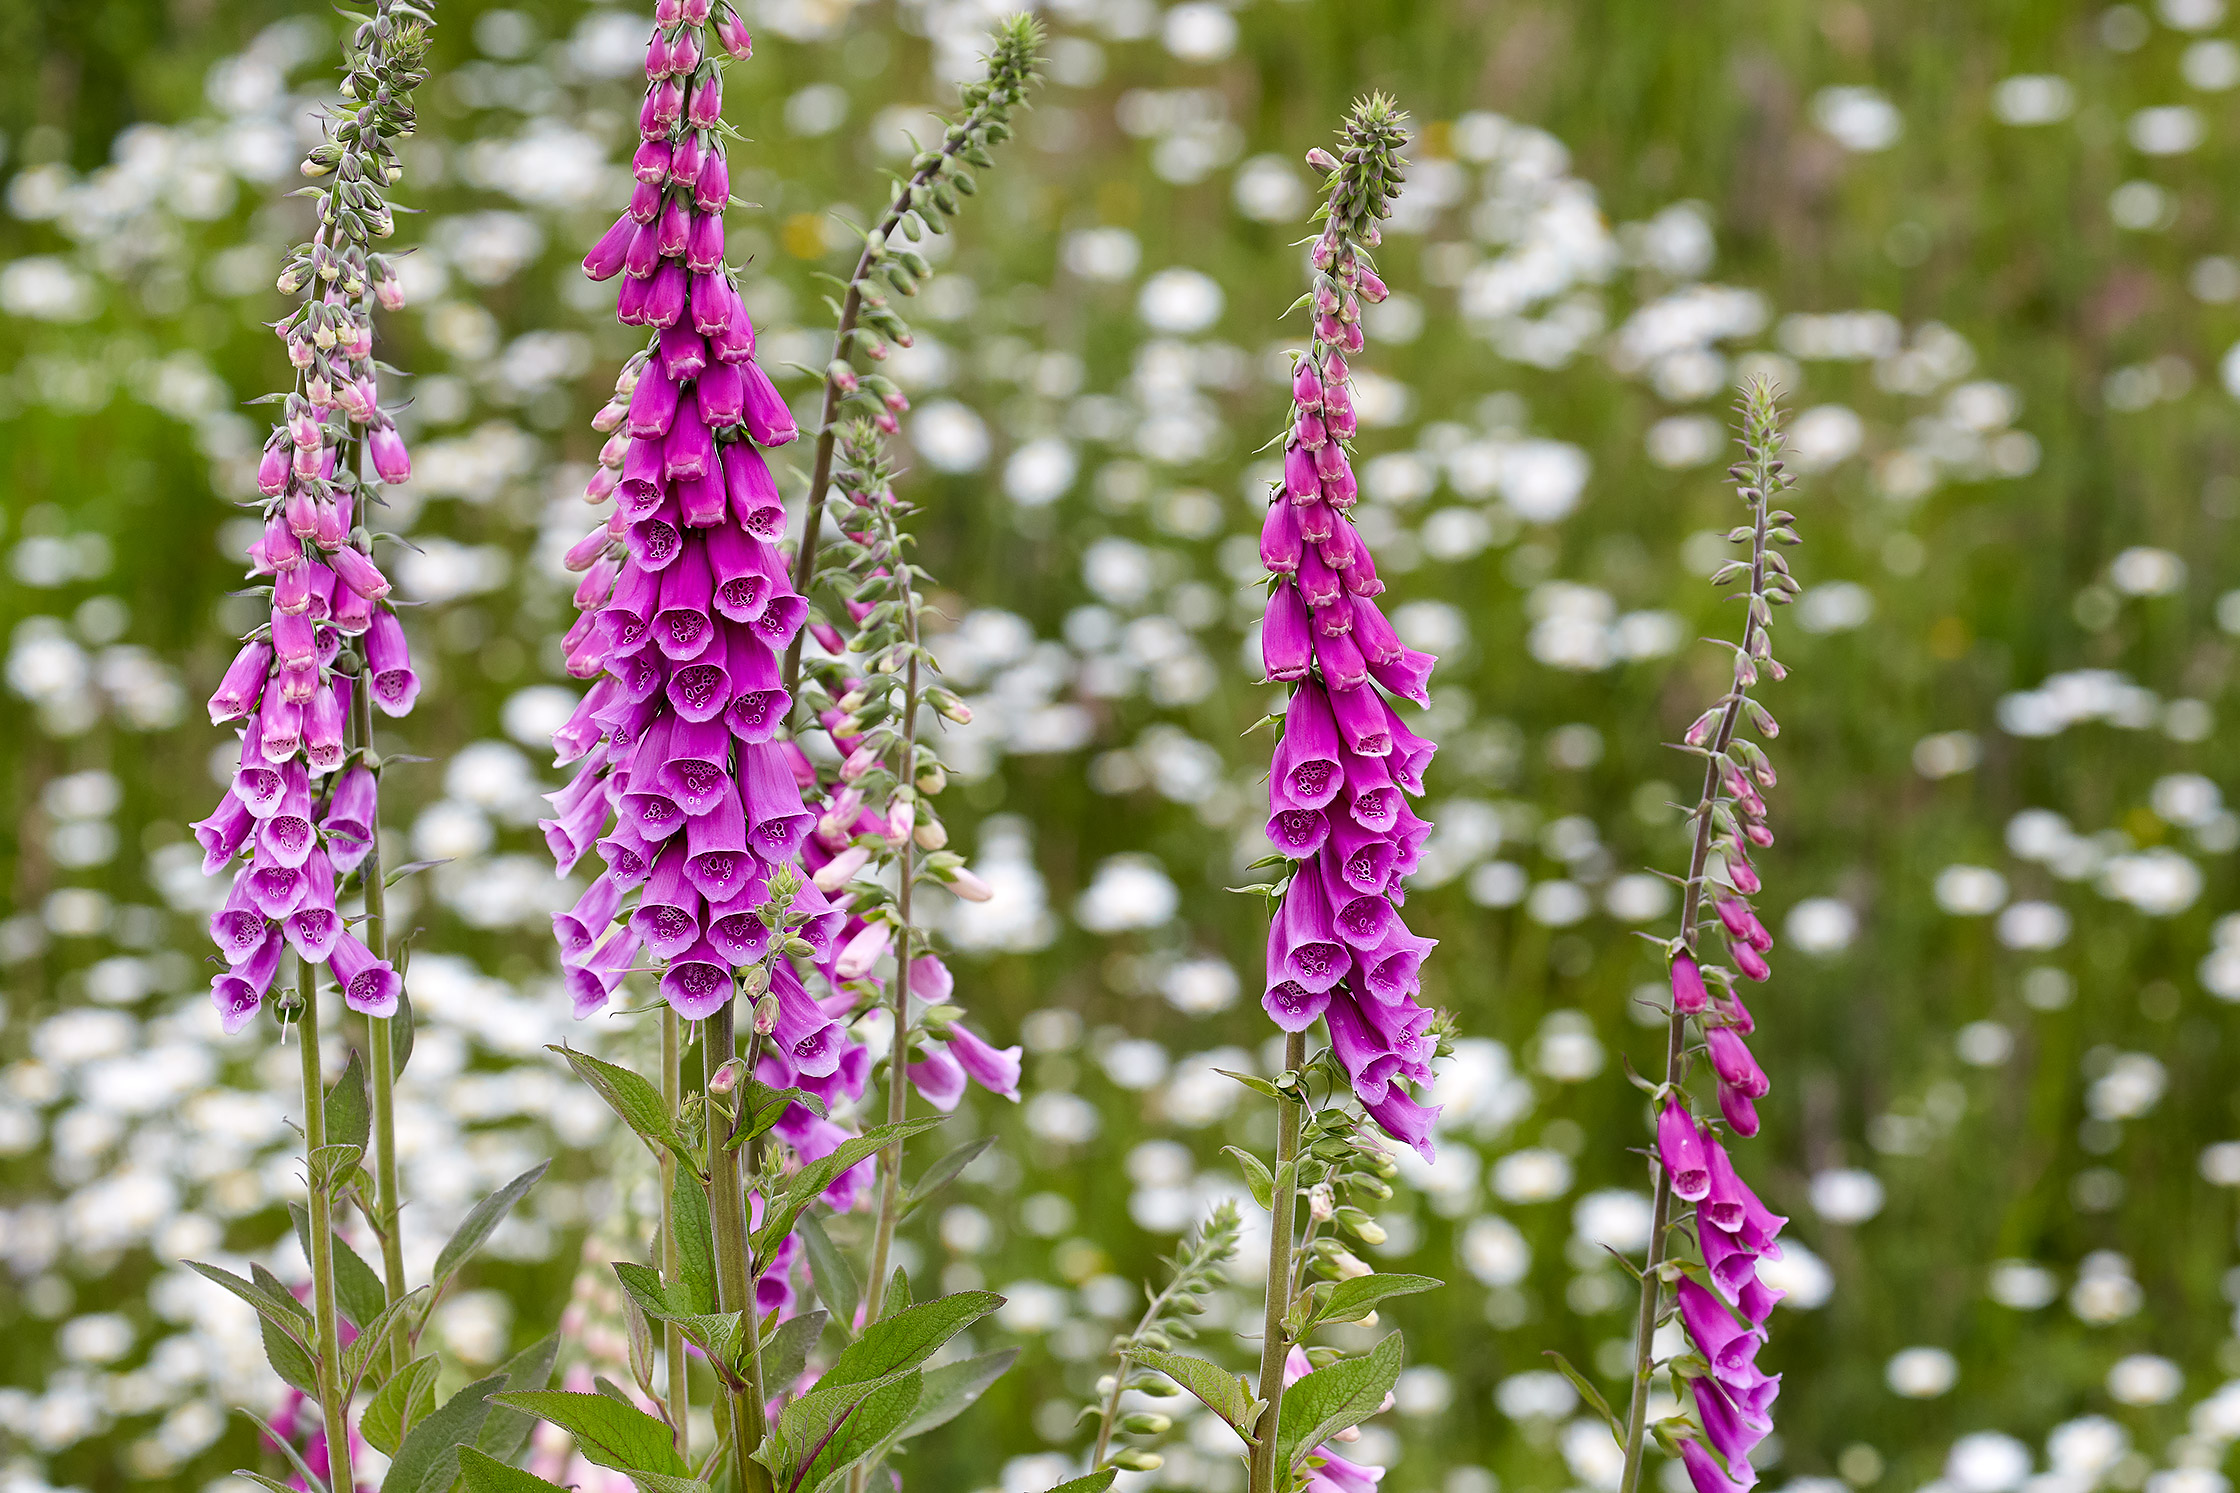 Foxgloves and Daisies, a Fresh Start